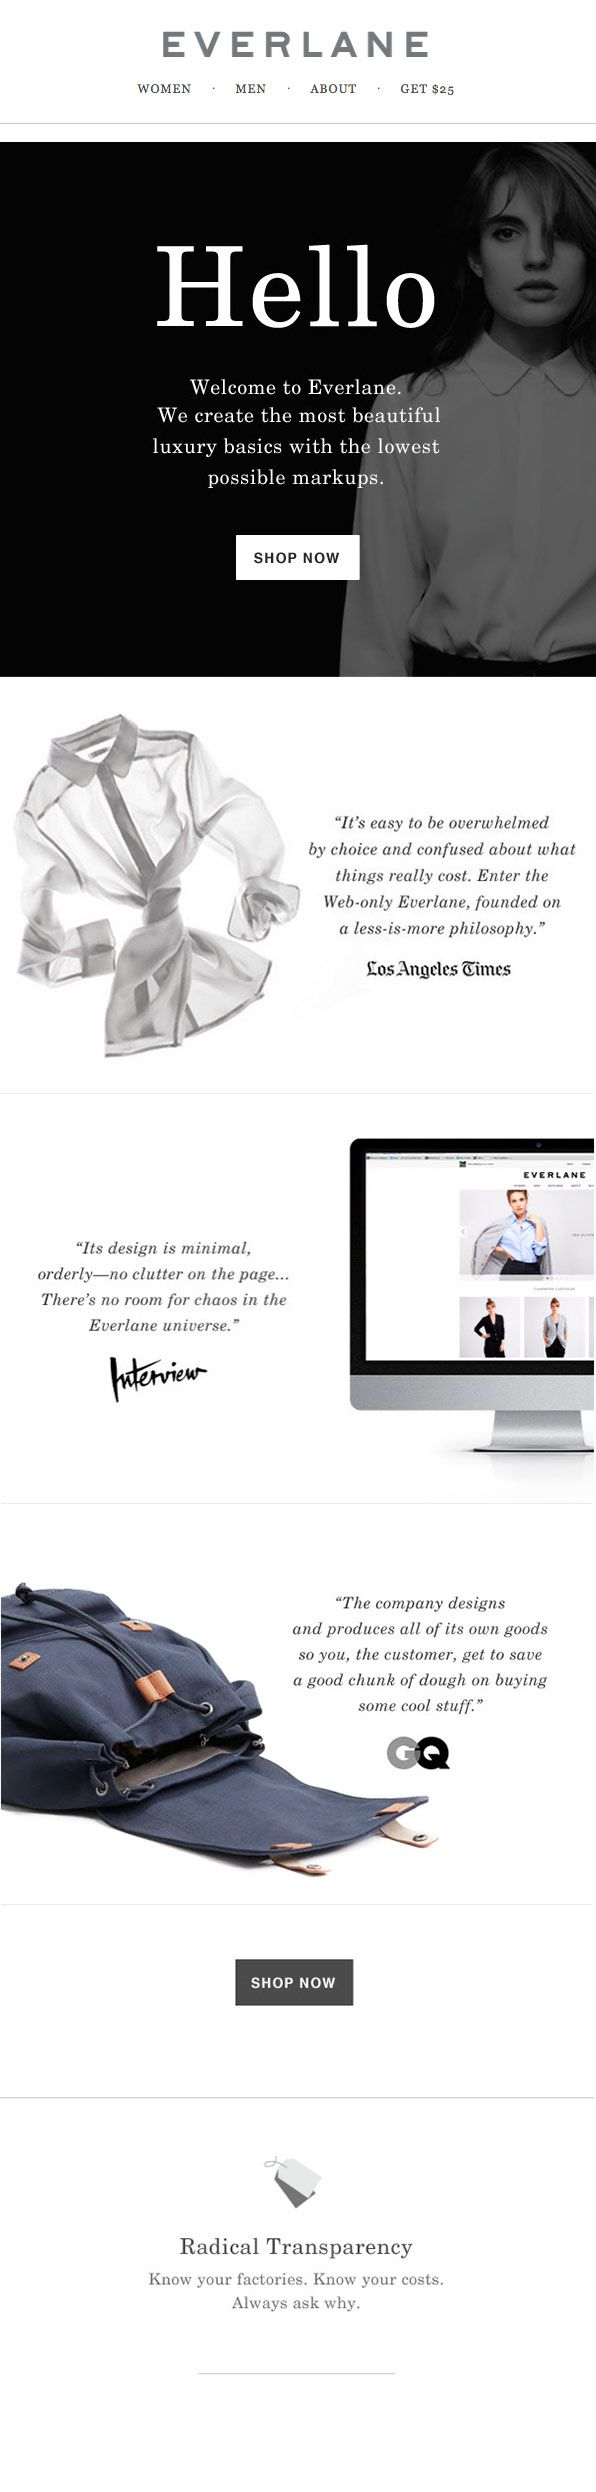 Everlane: welcome email